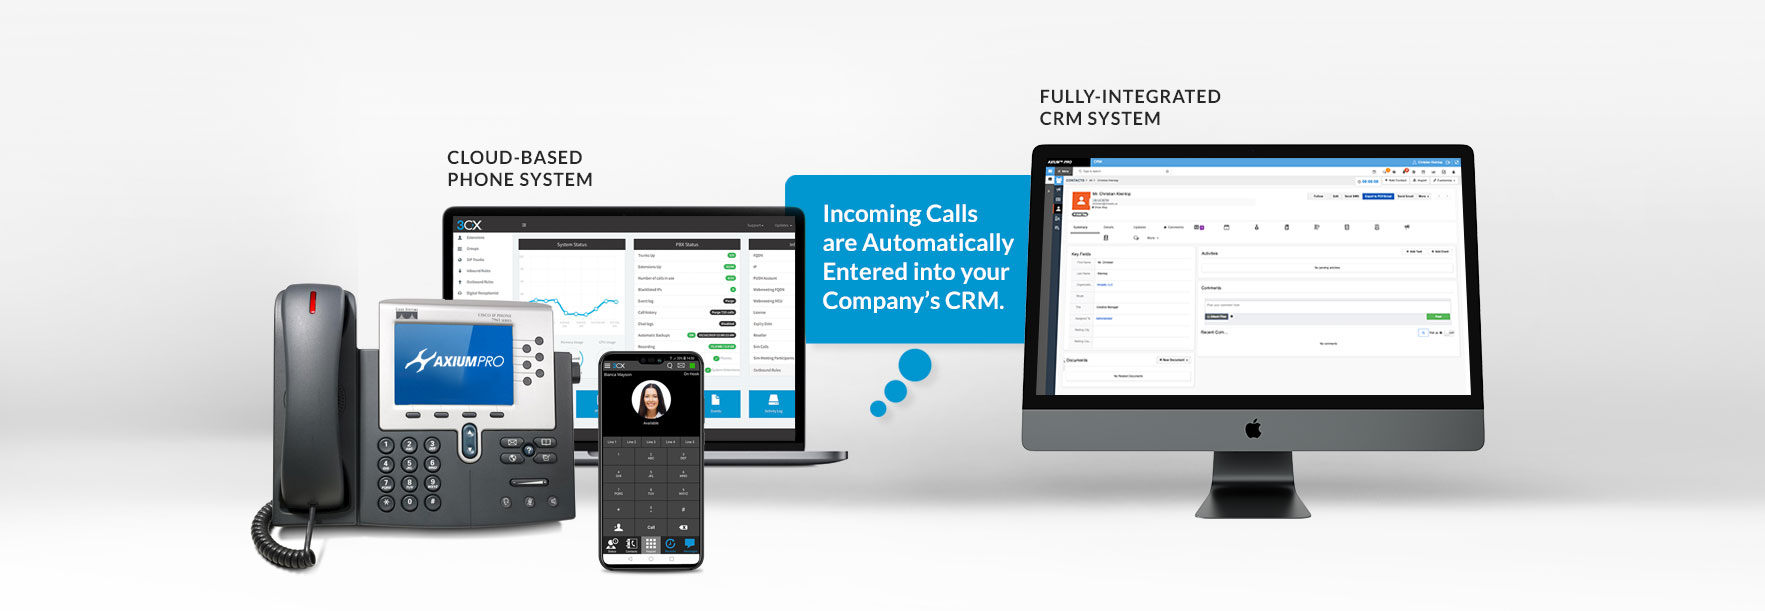 Incoming Calls are Automatically Entered into your Company's CRM.